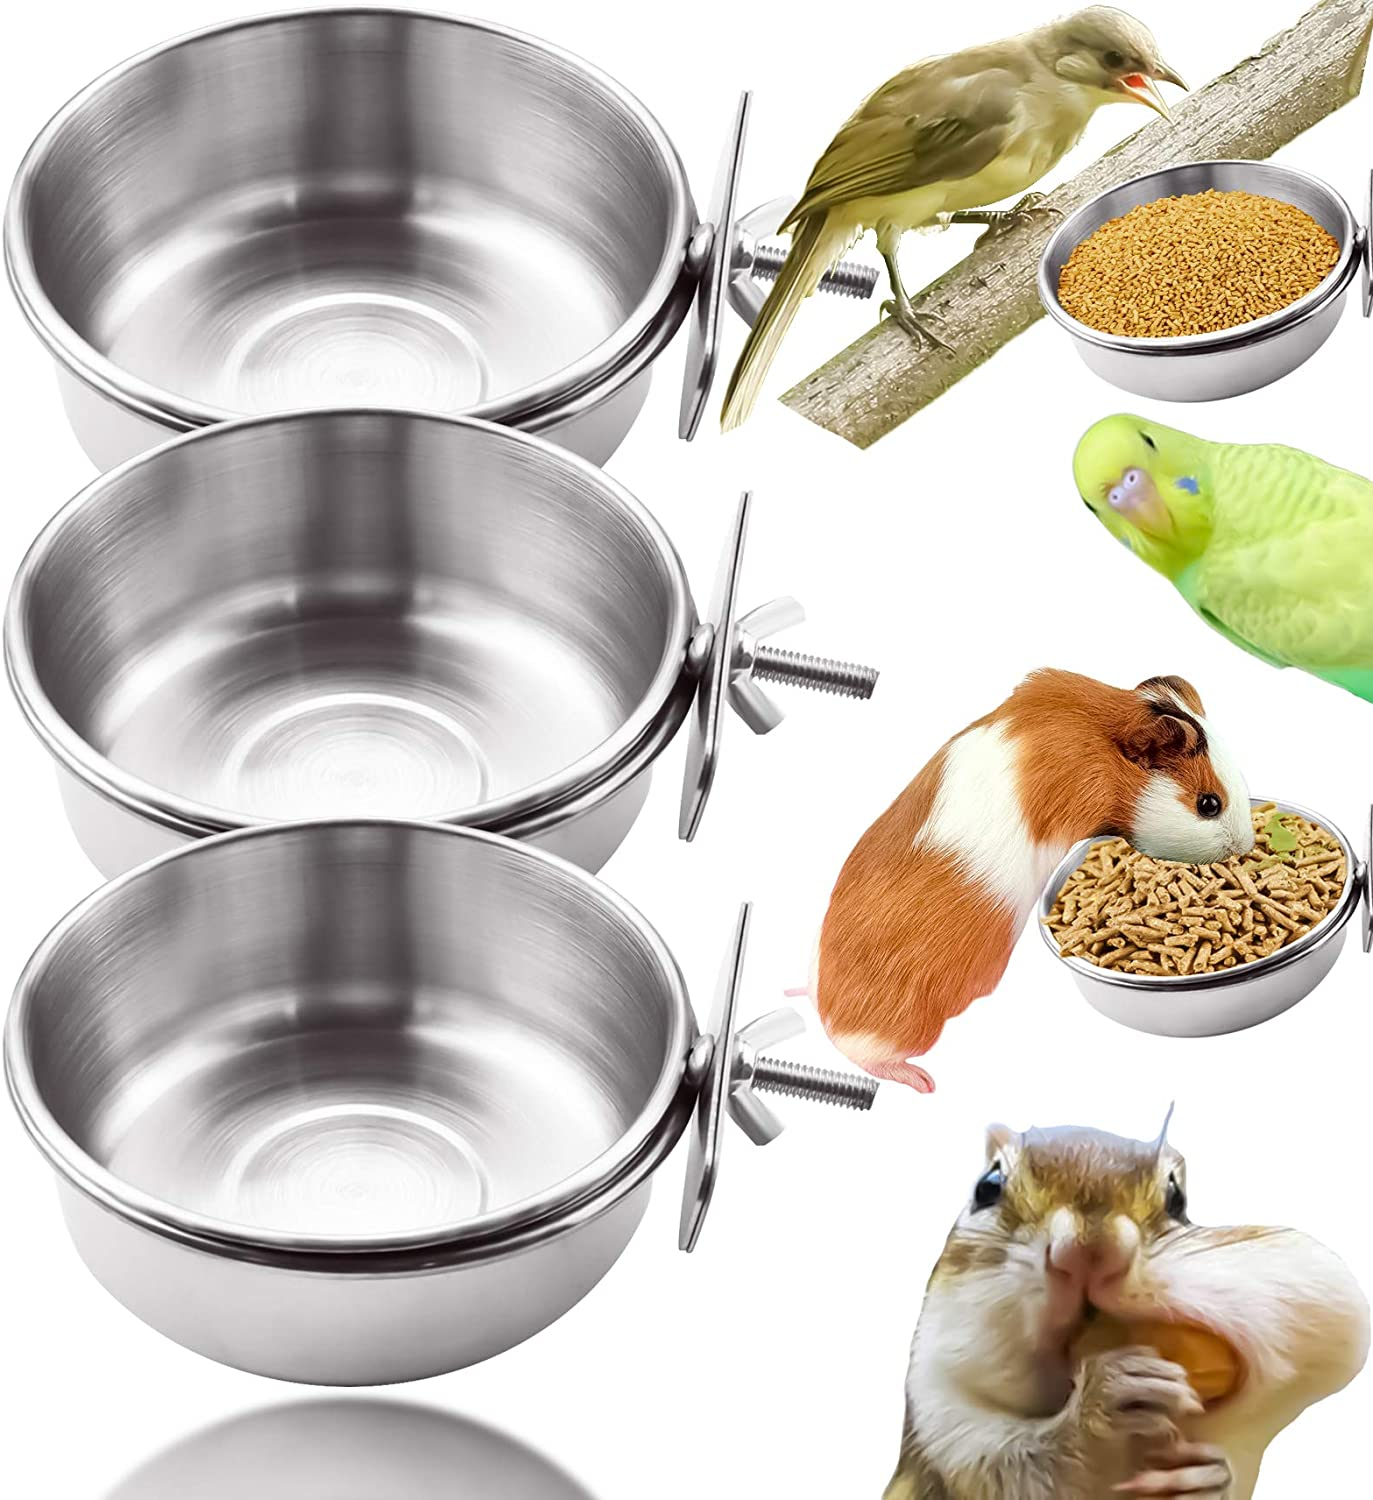 MotBach 3 Pieces Stainless Steel Bird Feeding Dish Cups, Bird Feeder Parrot Food Water Bowls with Clamp, Pet Cage Cups Holder for Bird Parrot Cockatiel Conure Budgies Parakeet Small Animal